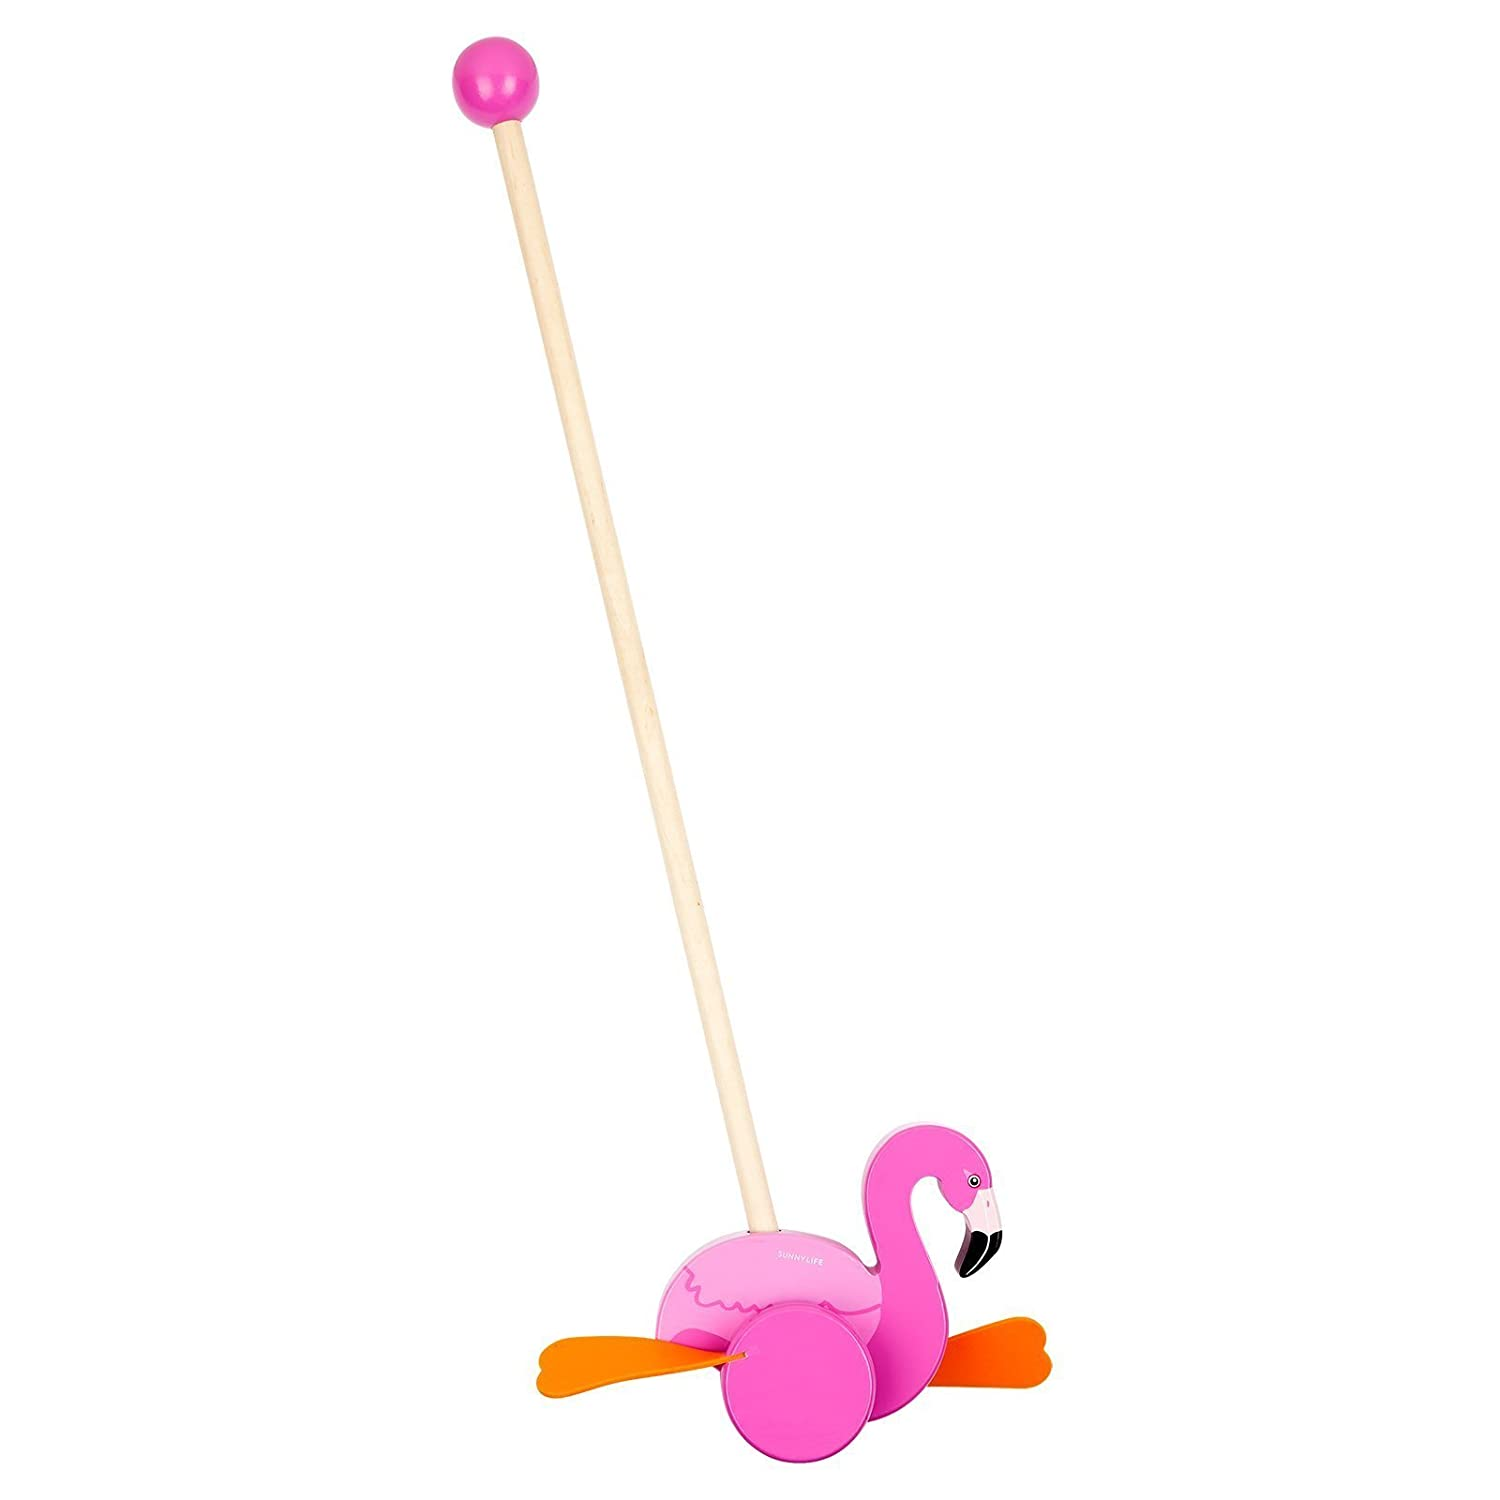 SunnyLIFE Toddlers Push Along Toy 3 Colourful Bird Designs